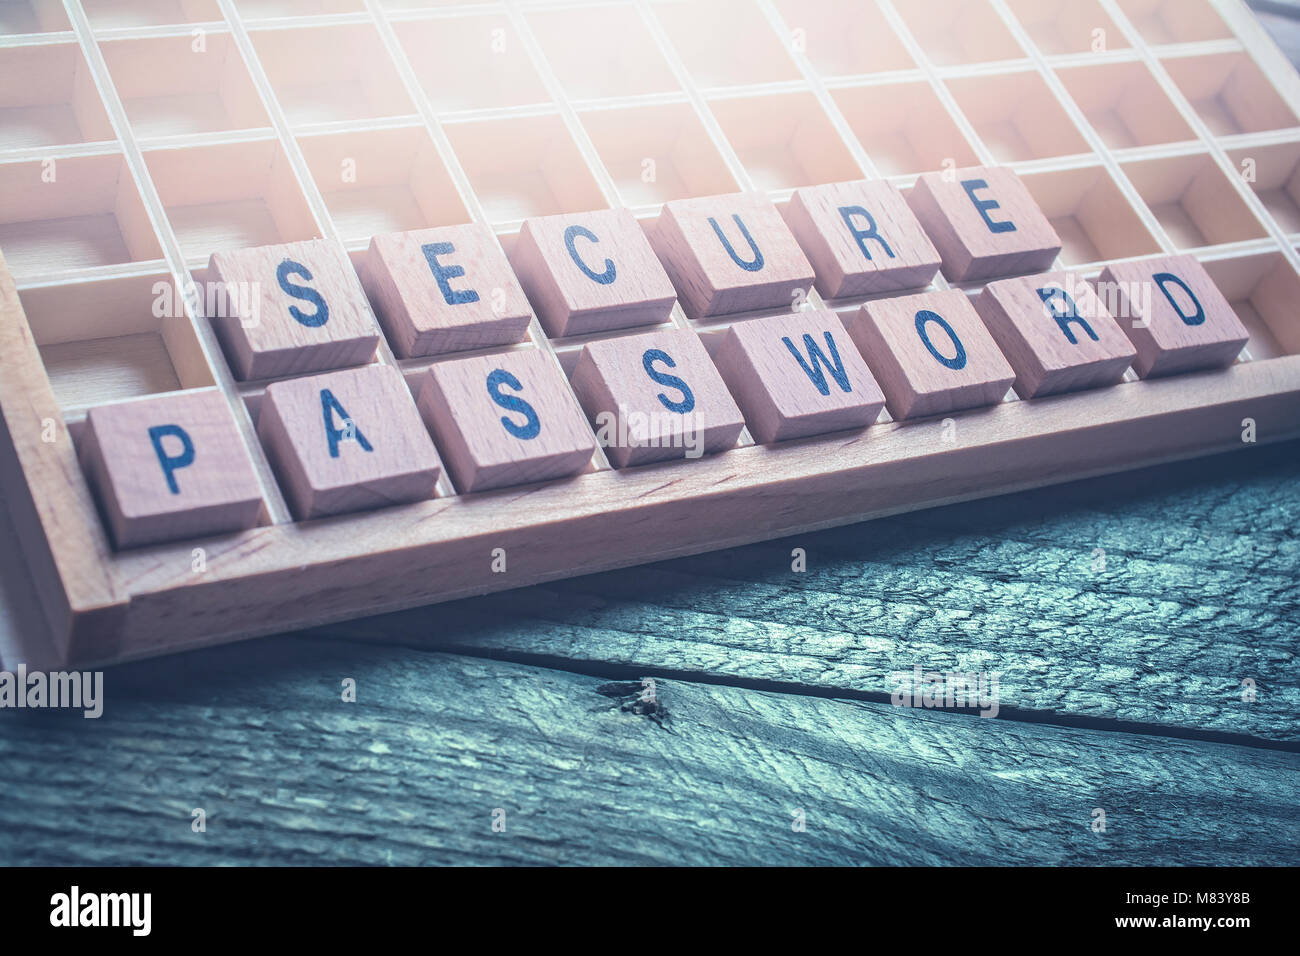 Closeup Of The Words Secure Password Formed By Wooden Blocks On A Wooden Floor - Stock Image